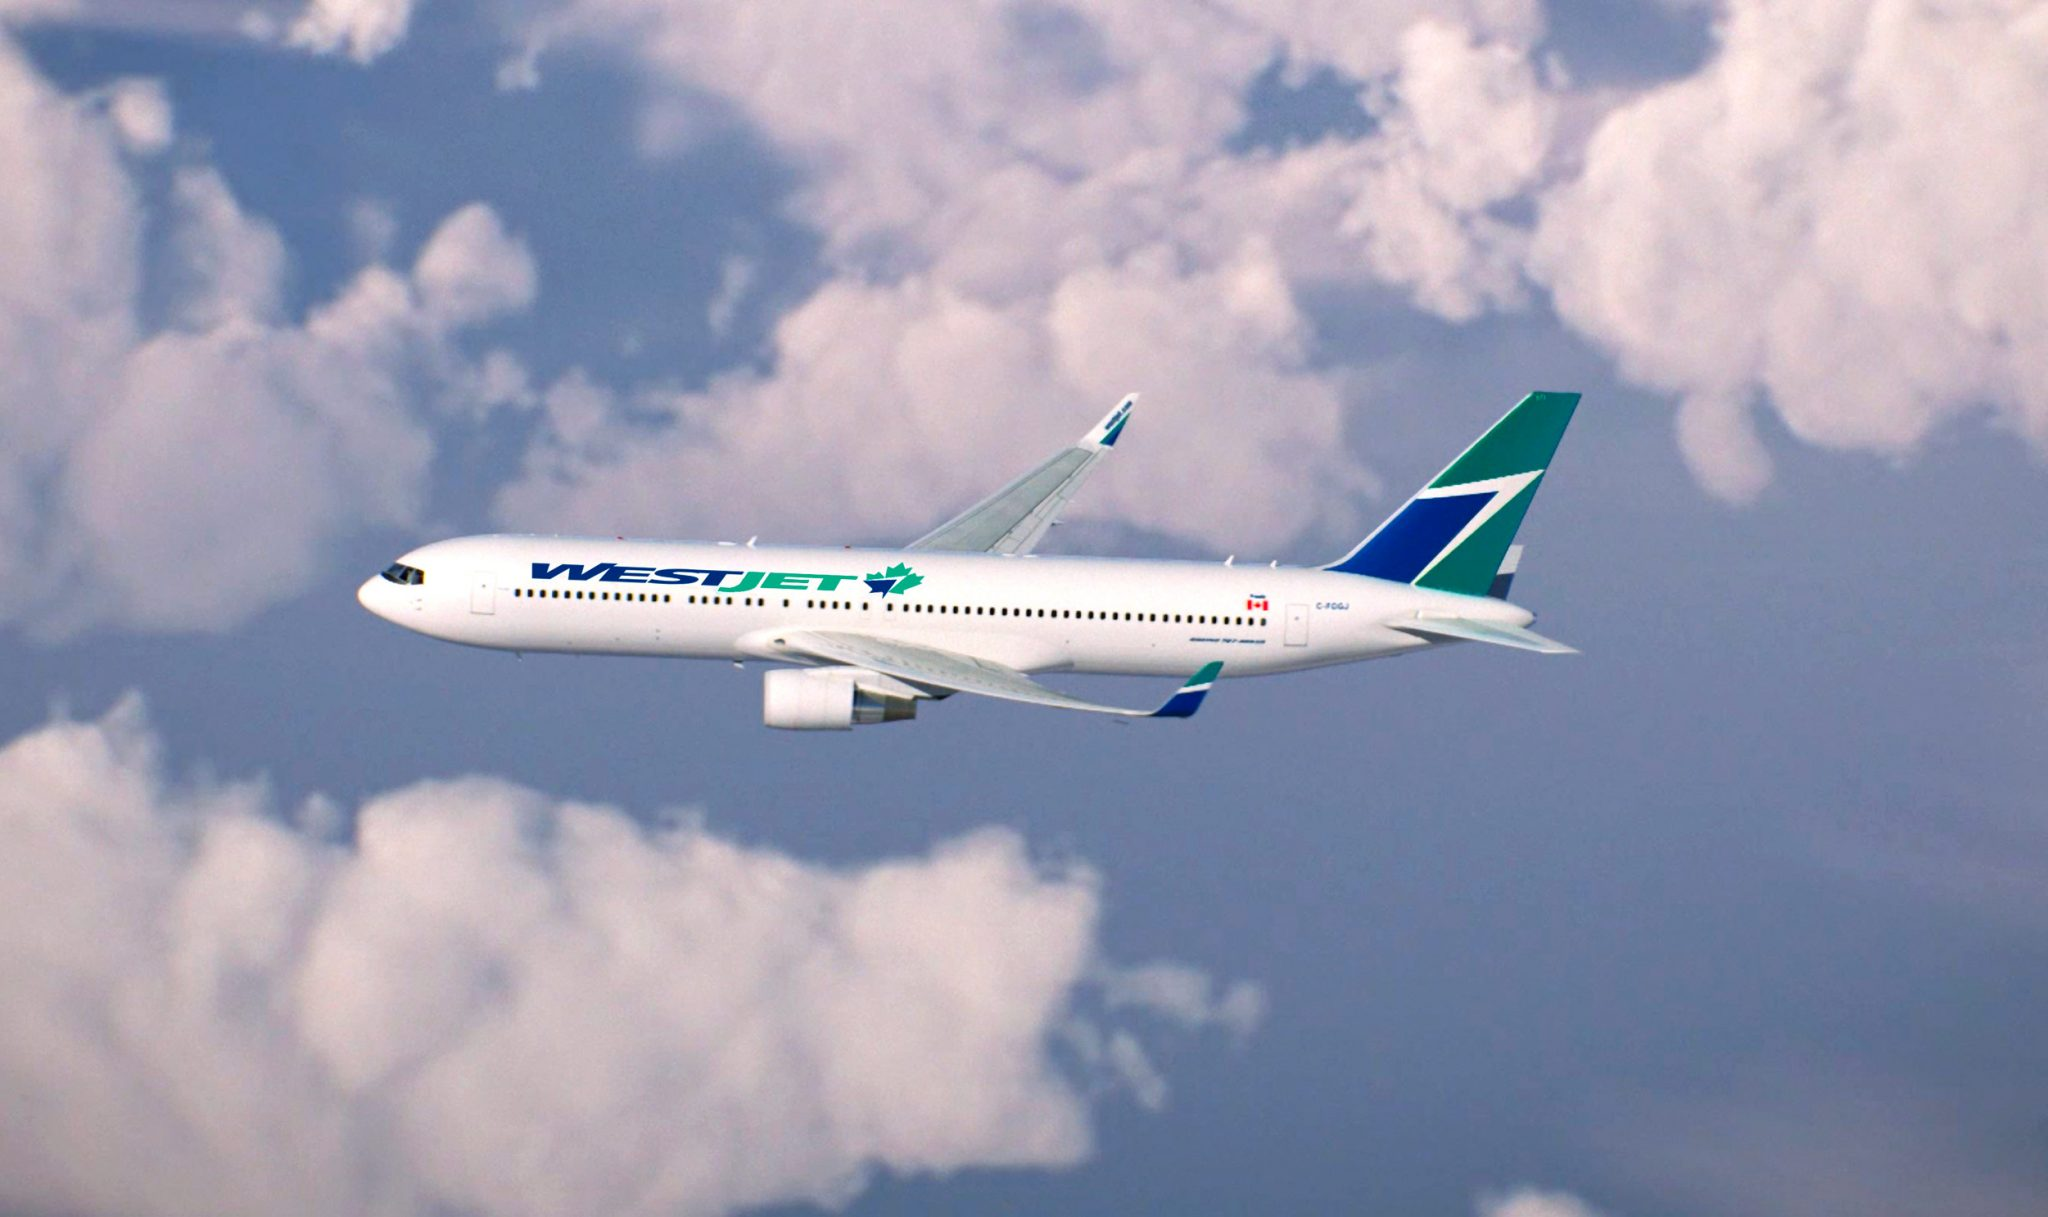 'The vaccine gives us hope': WestJet sees path to recovery in 2021